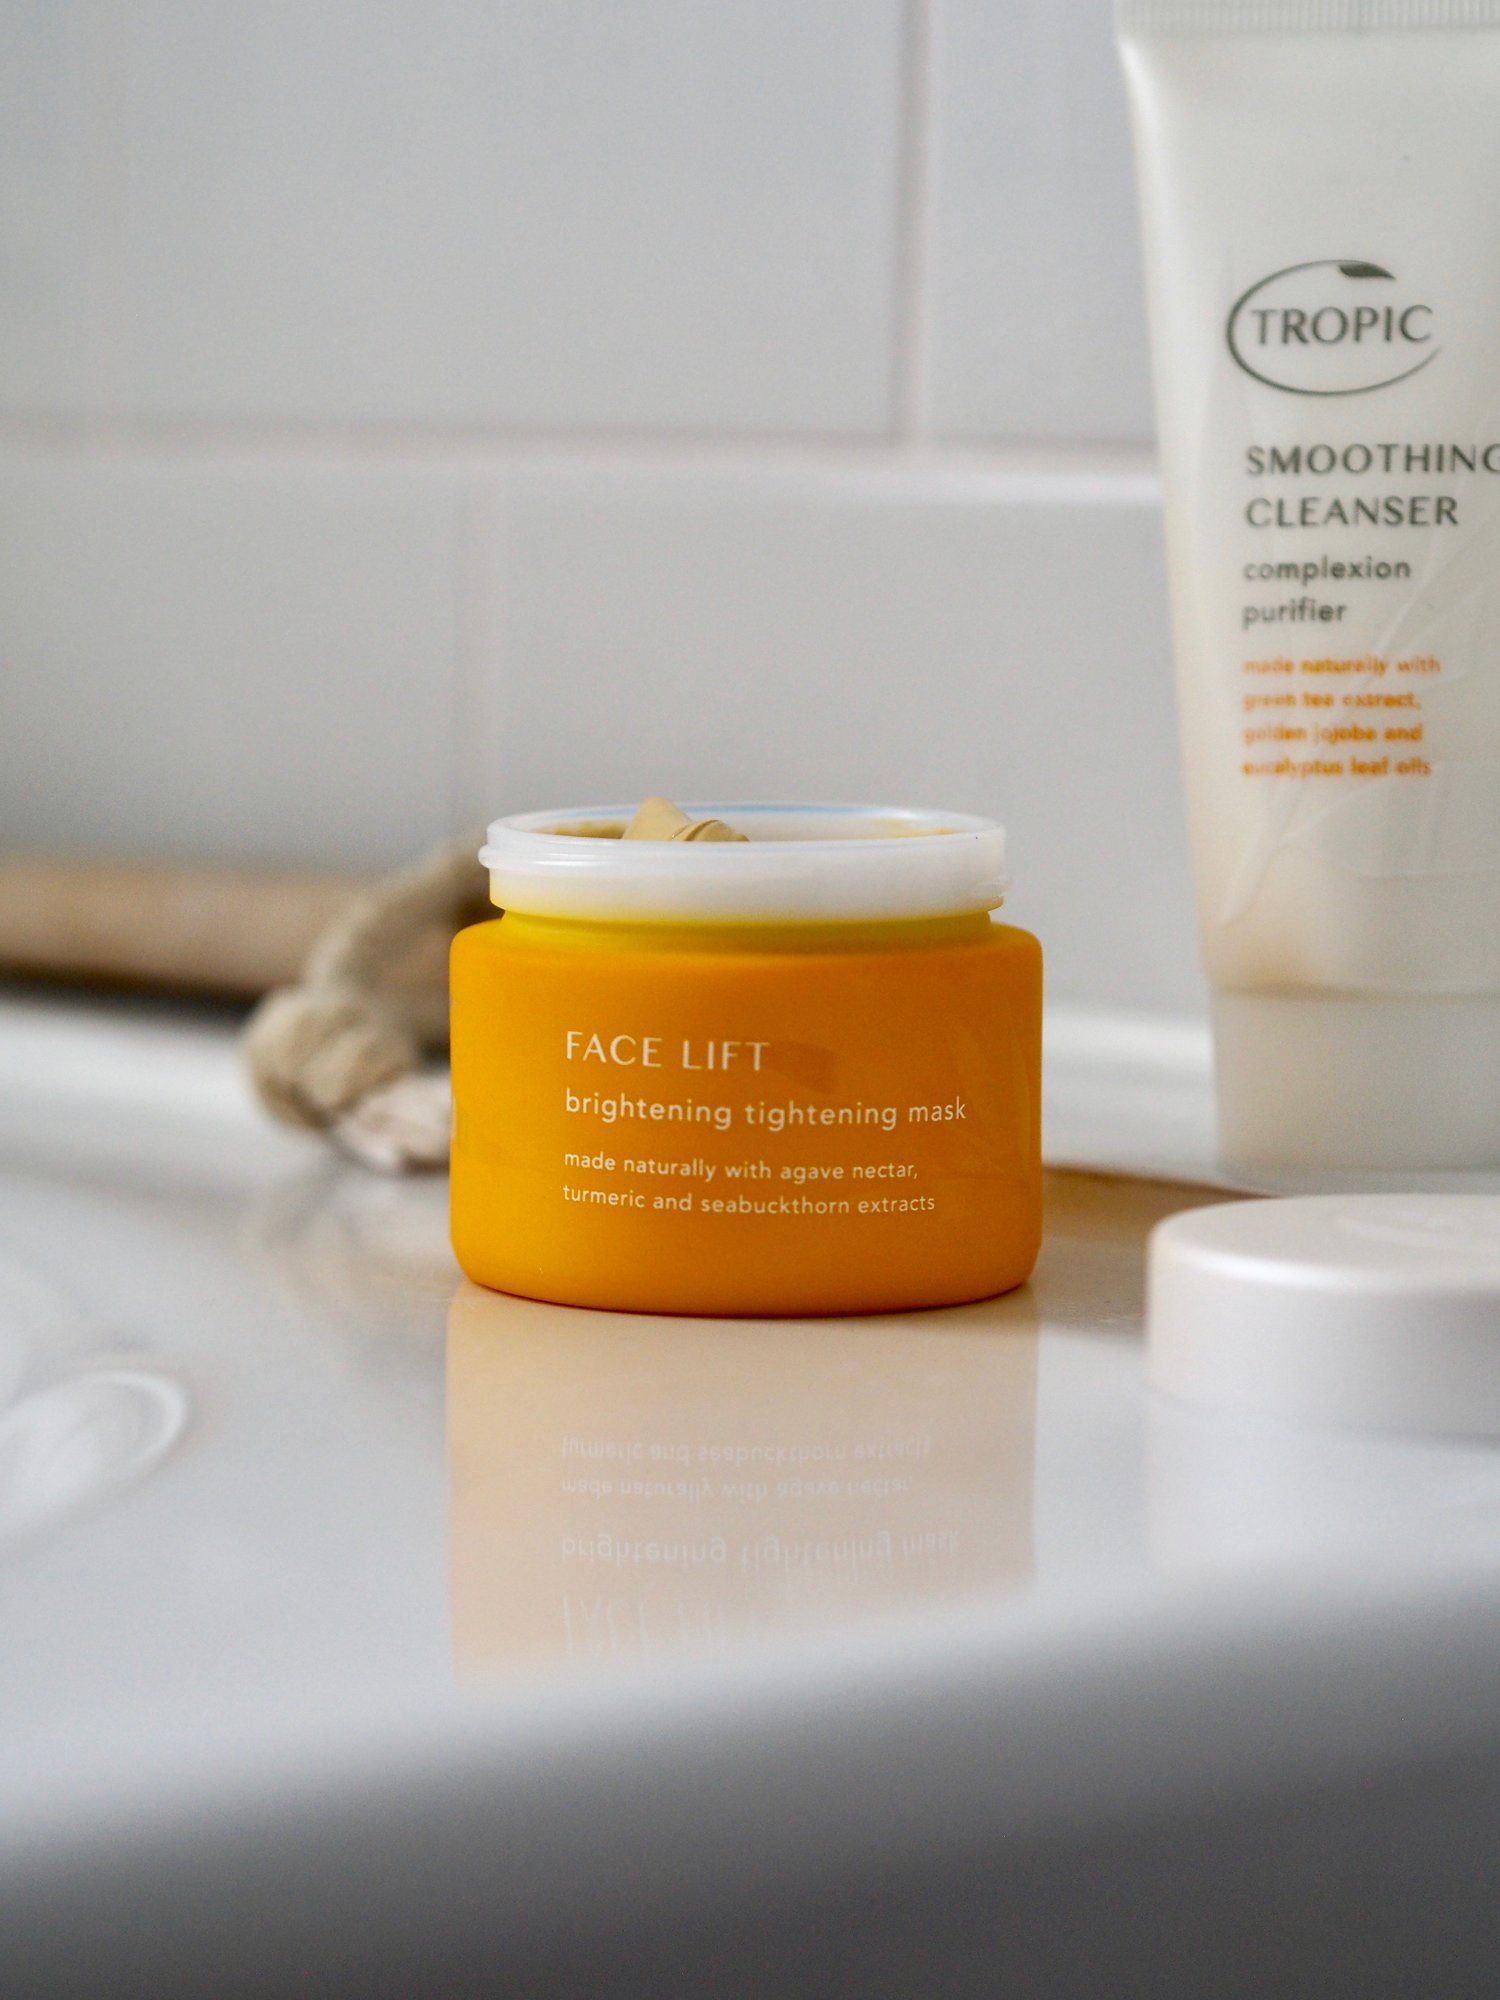 The Grown Up Edit Tropic Skincare Review